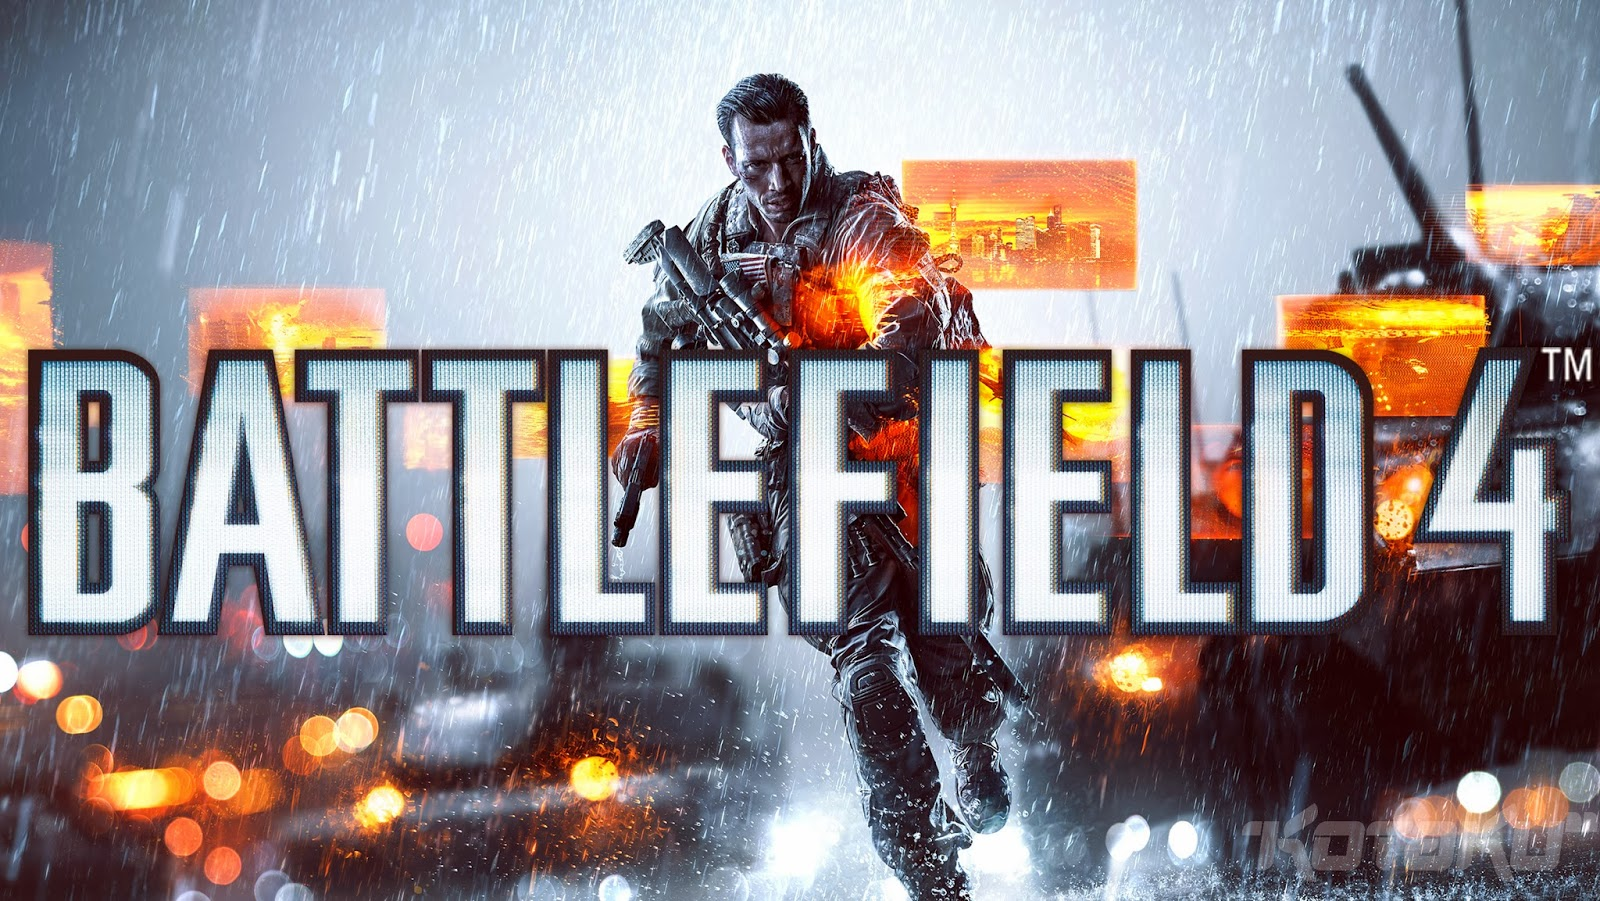 Battlefield 4 RELOADED Tek Link Torrent İndir